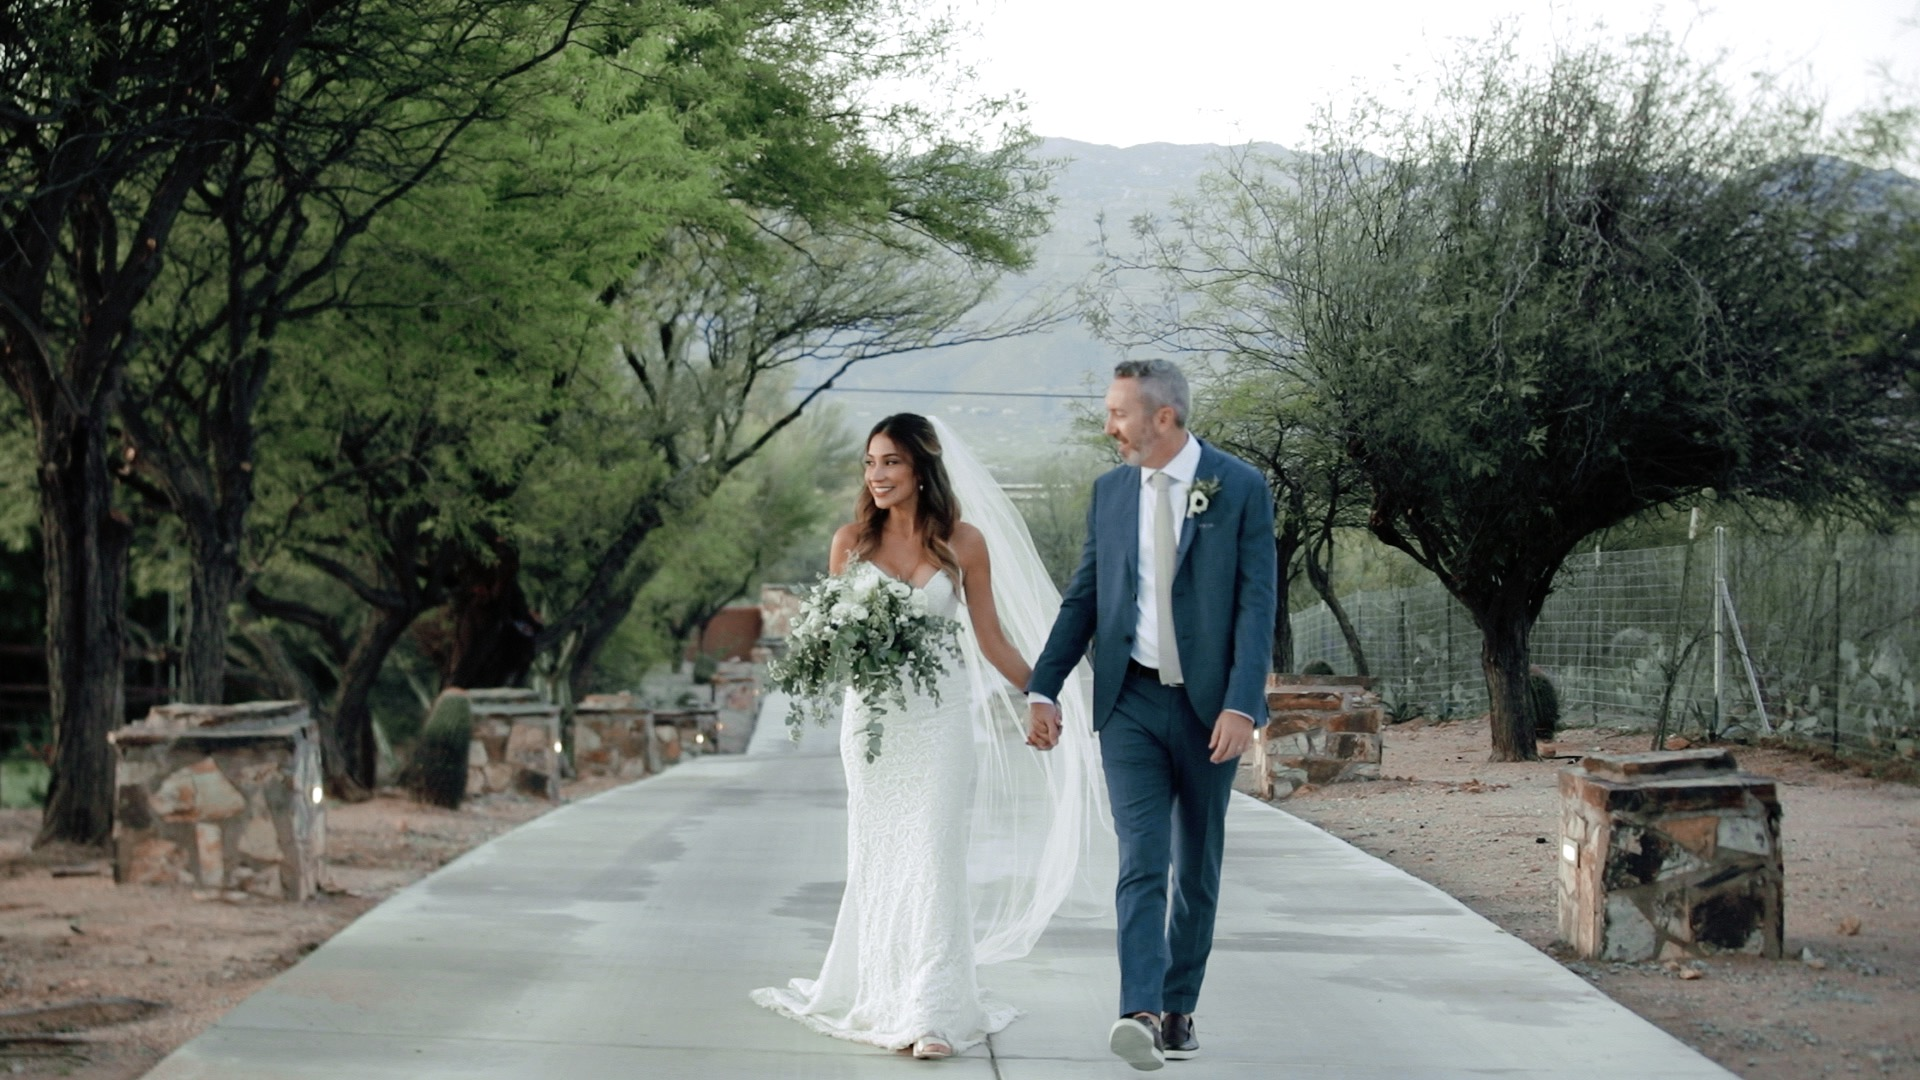 Tucson wedding videographer